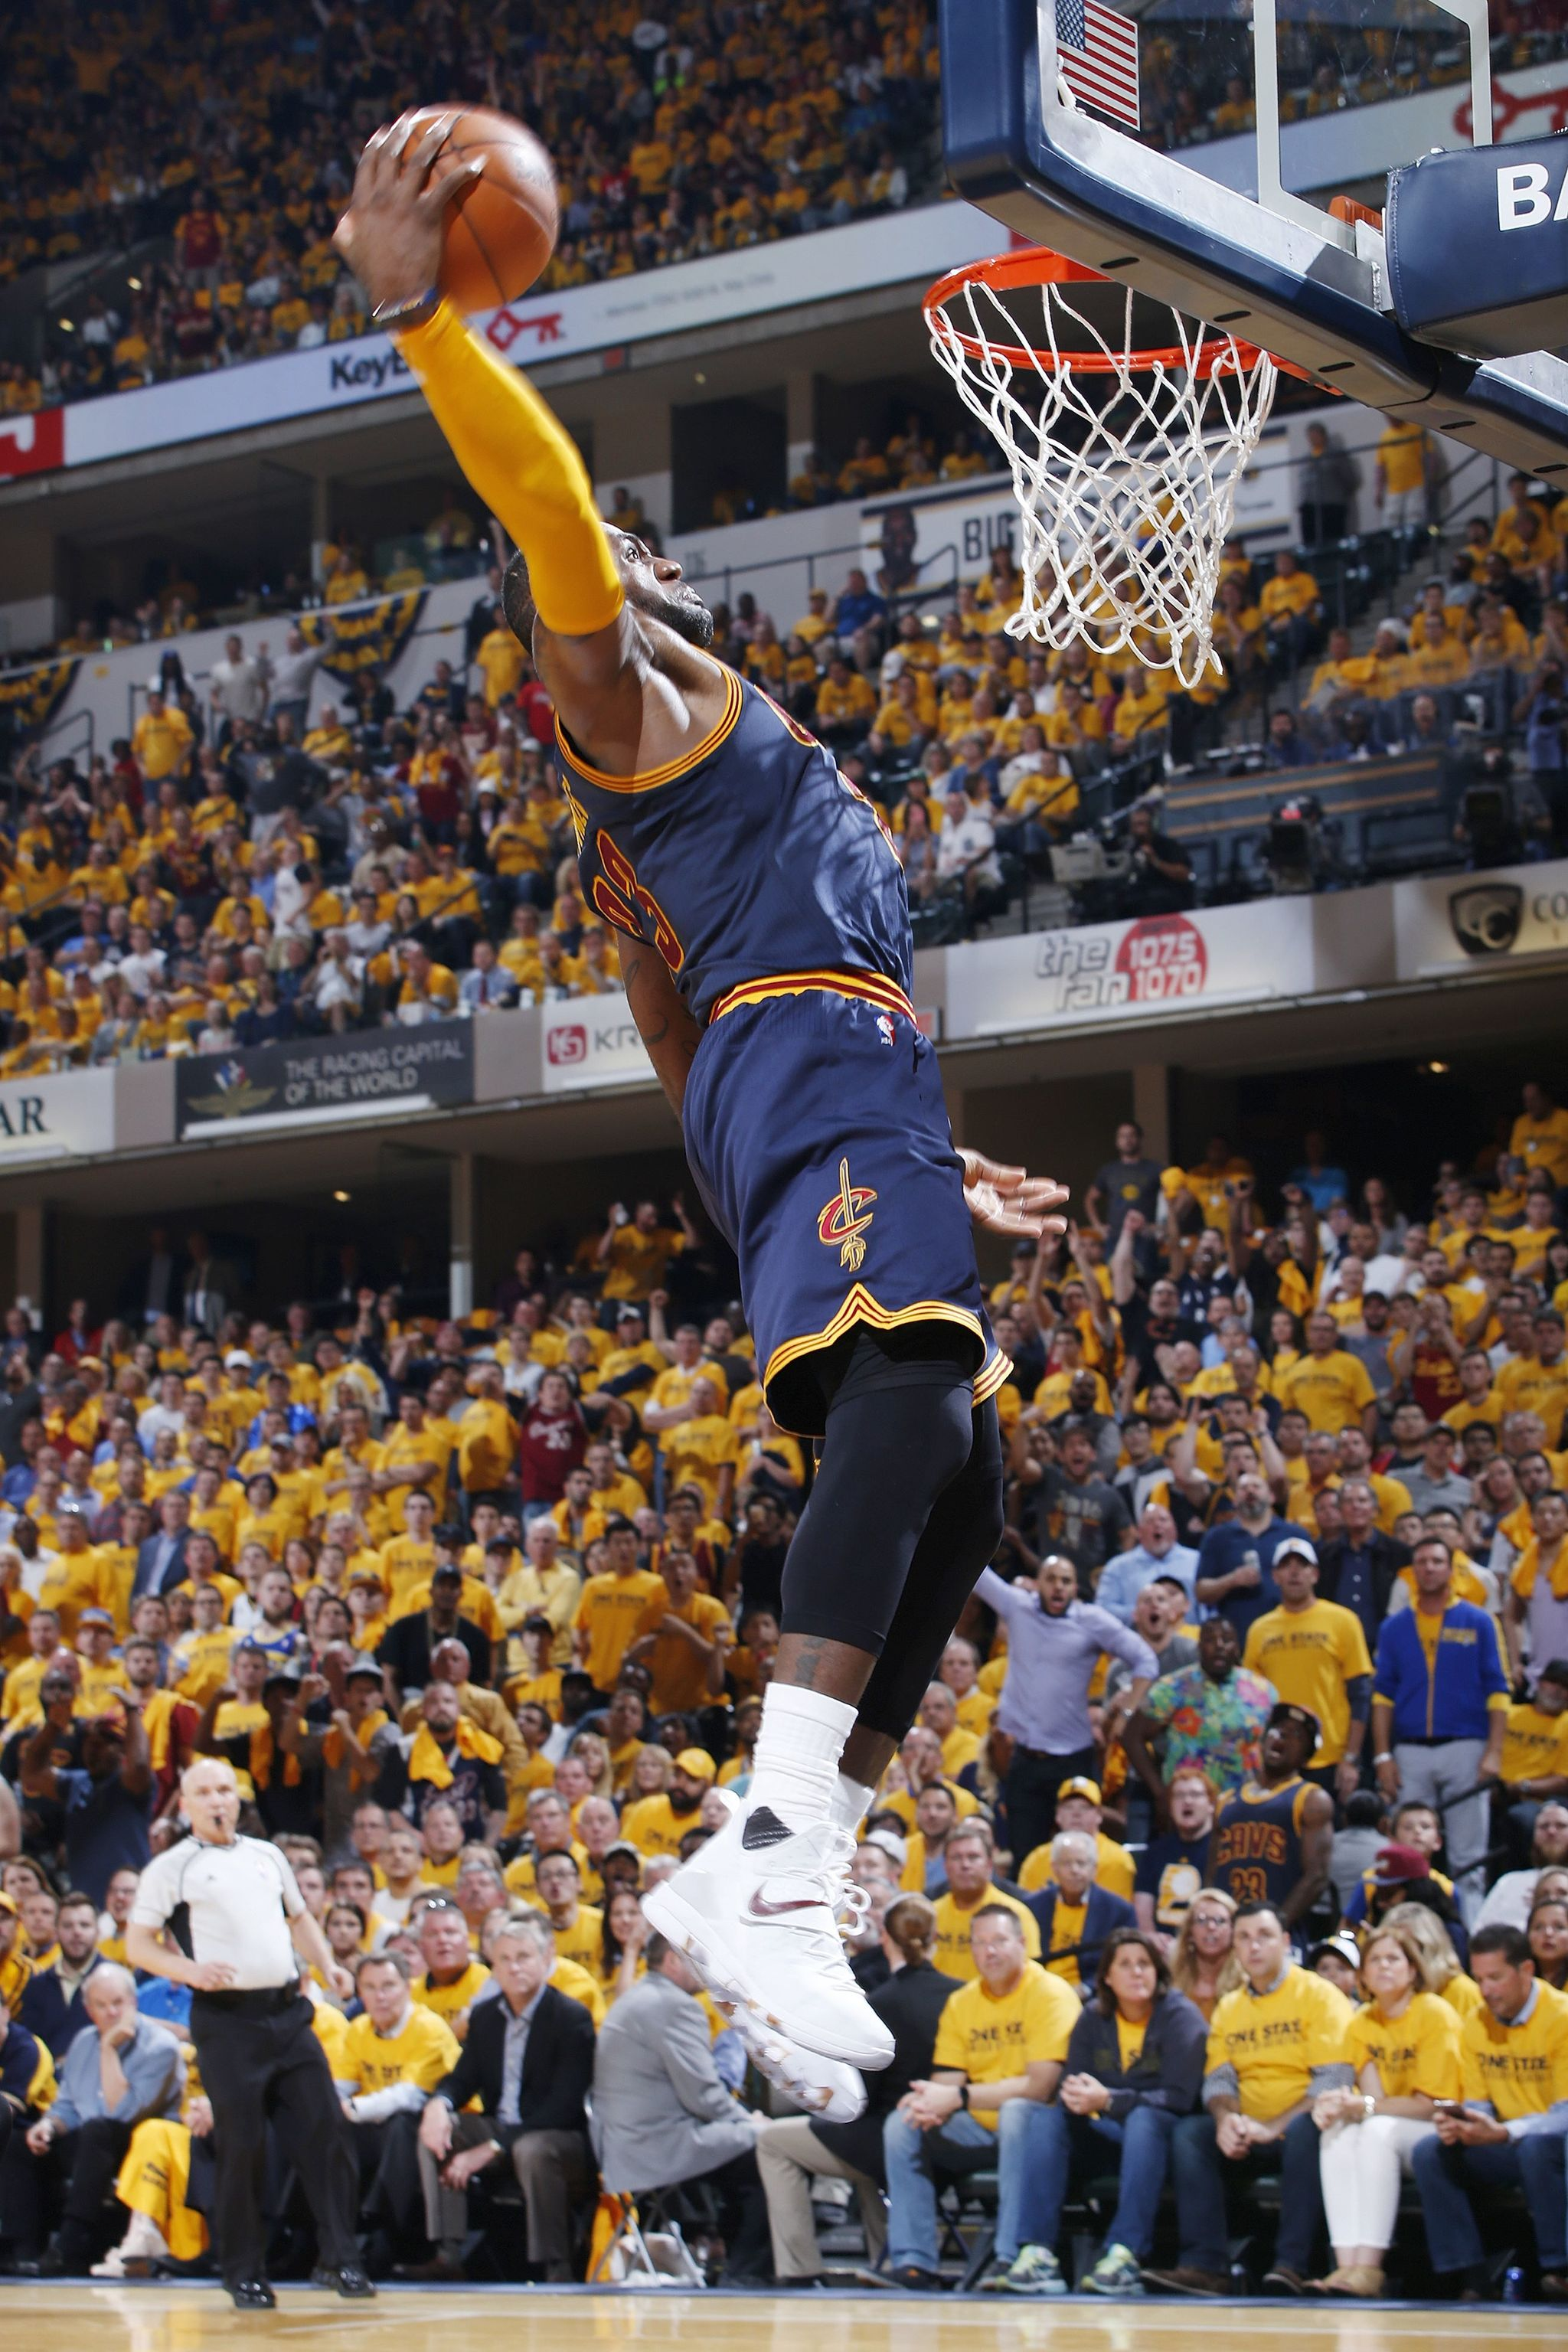 LeBron James machacando el aro de los Pacers